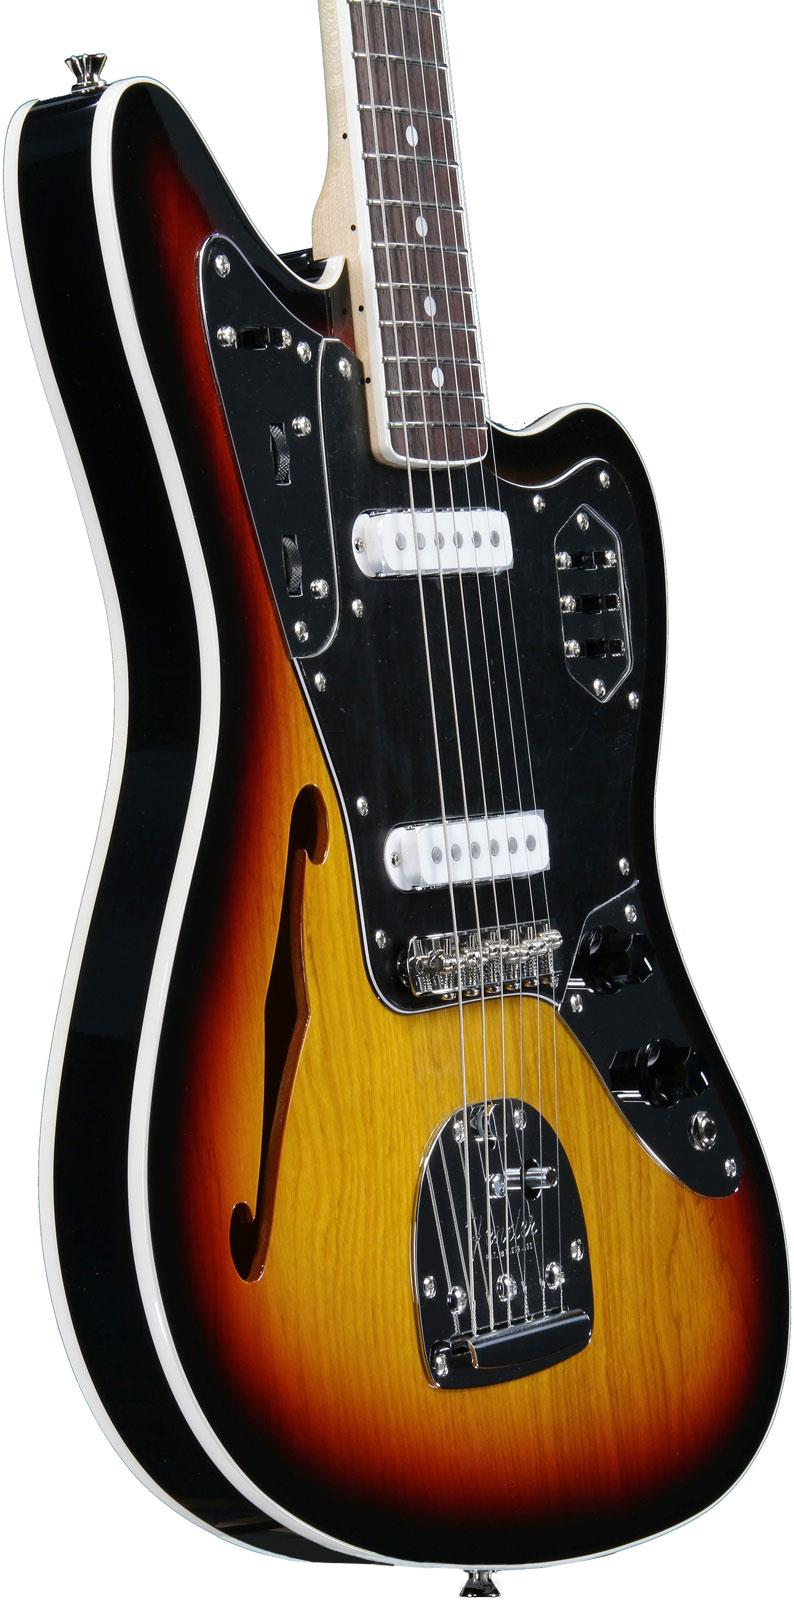 fender jaguar thinline special edition 3 tone sunburst | keymusic